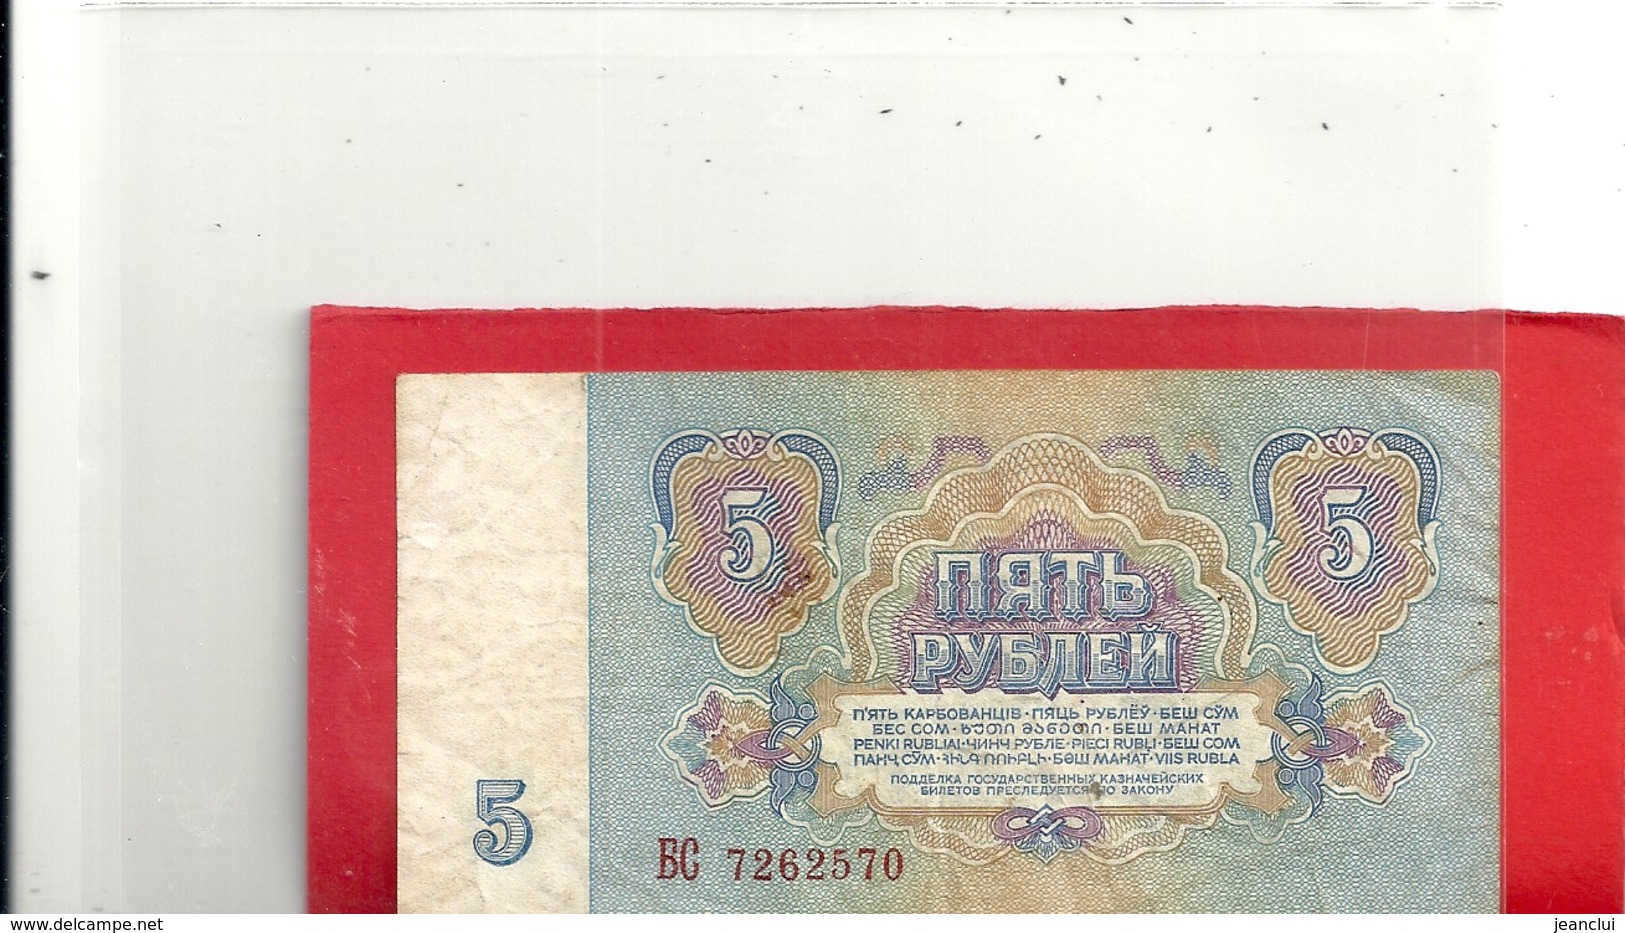 RUSSIE. STATE TREASURY NOTE .ISSUE 1961 . 5 RUBLE . N° BC7262570.. 2 SCANES - Russie